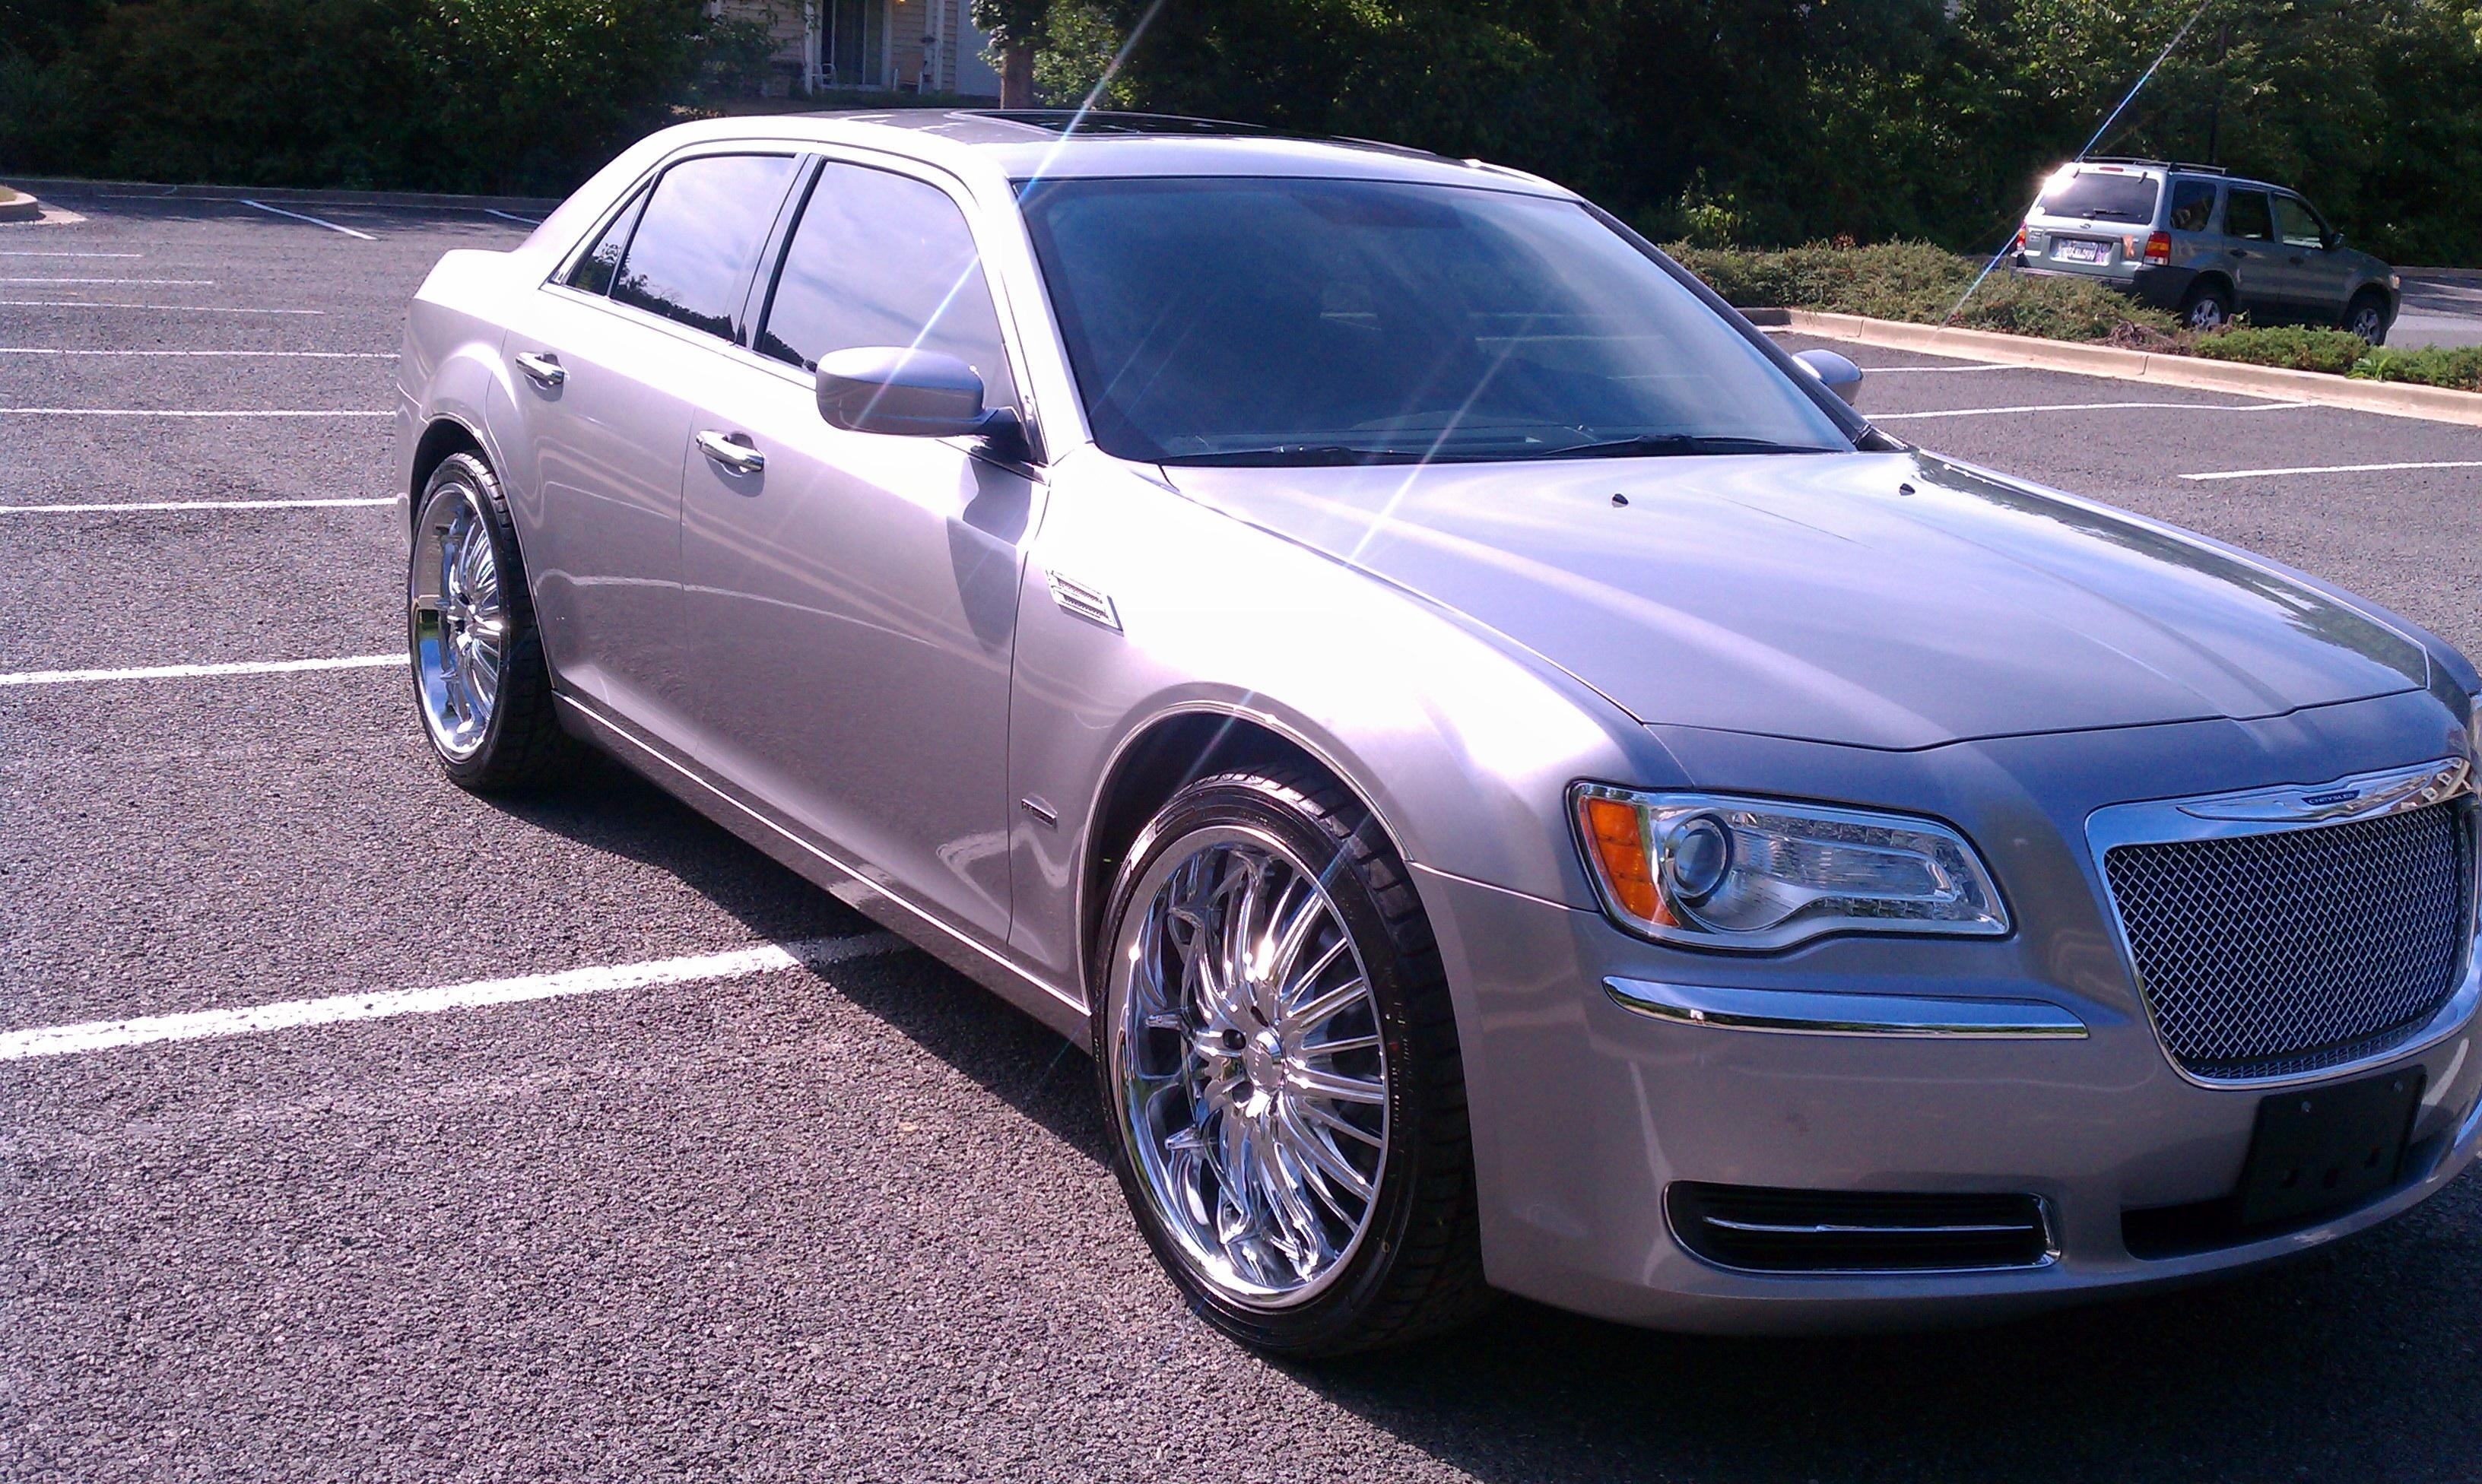 platbond's 2011 Chrysler 300